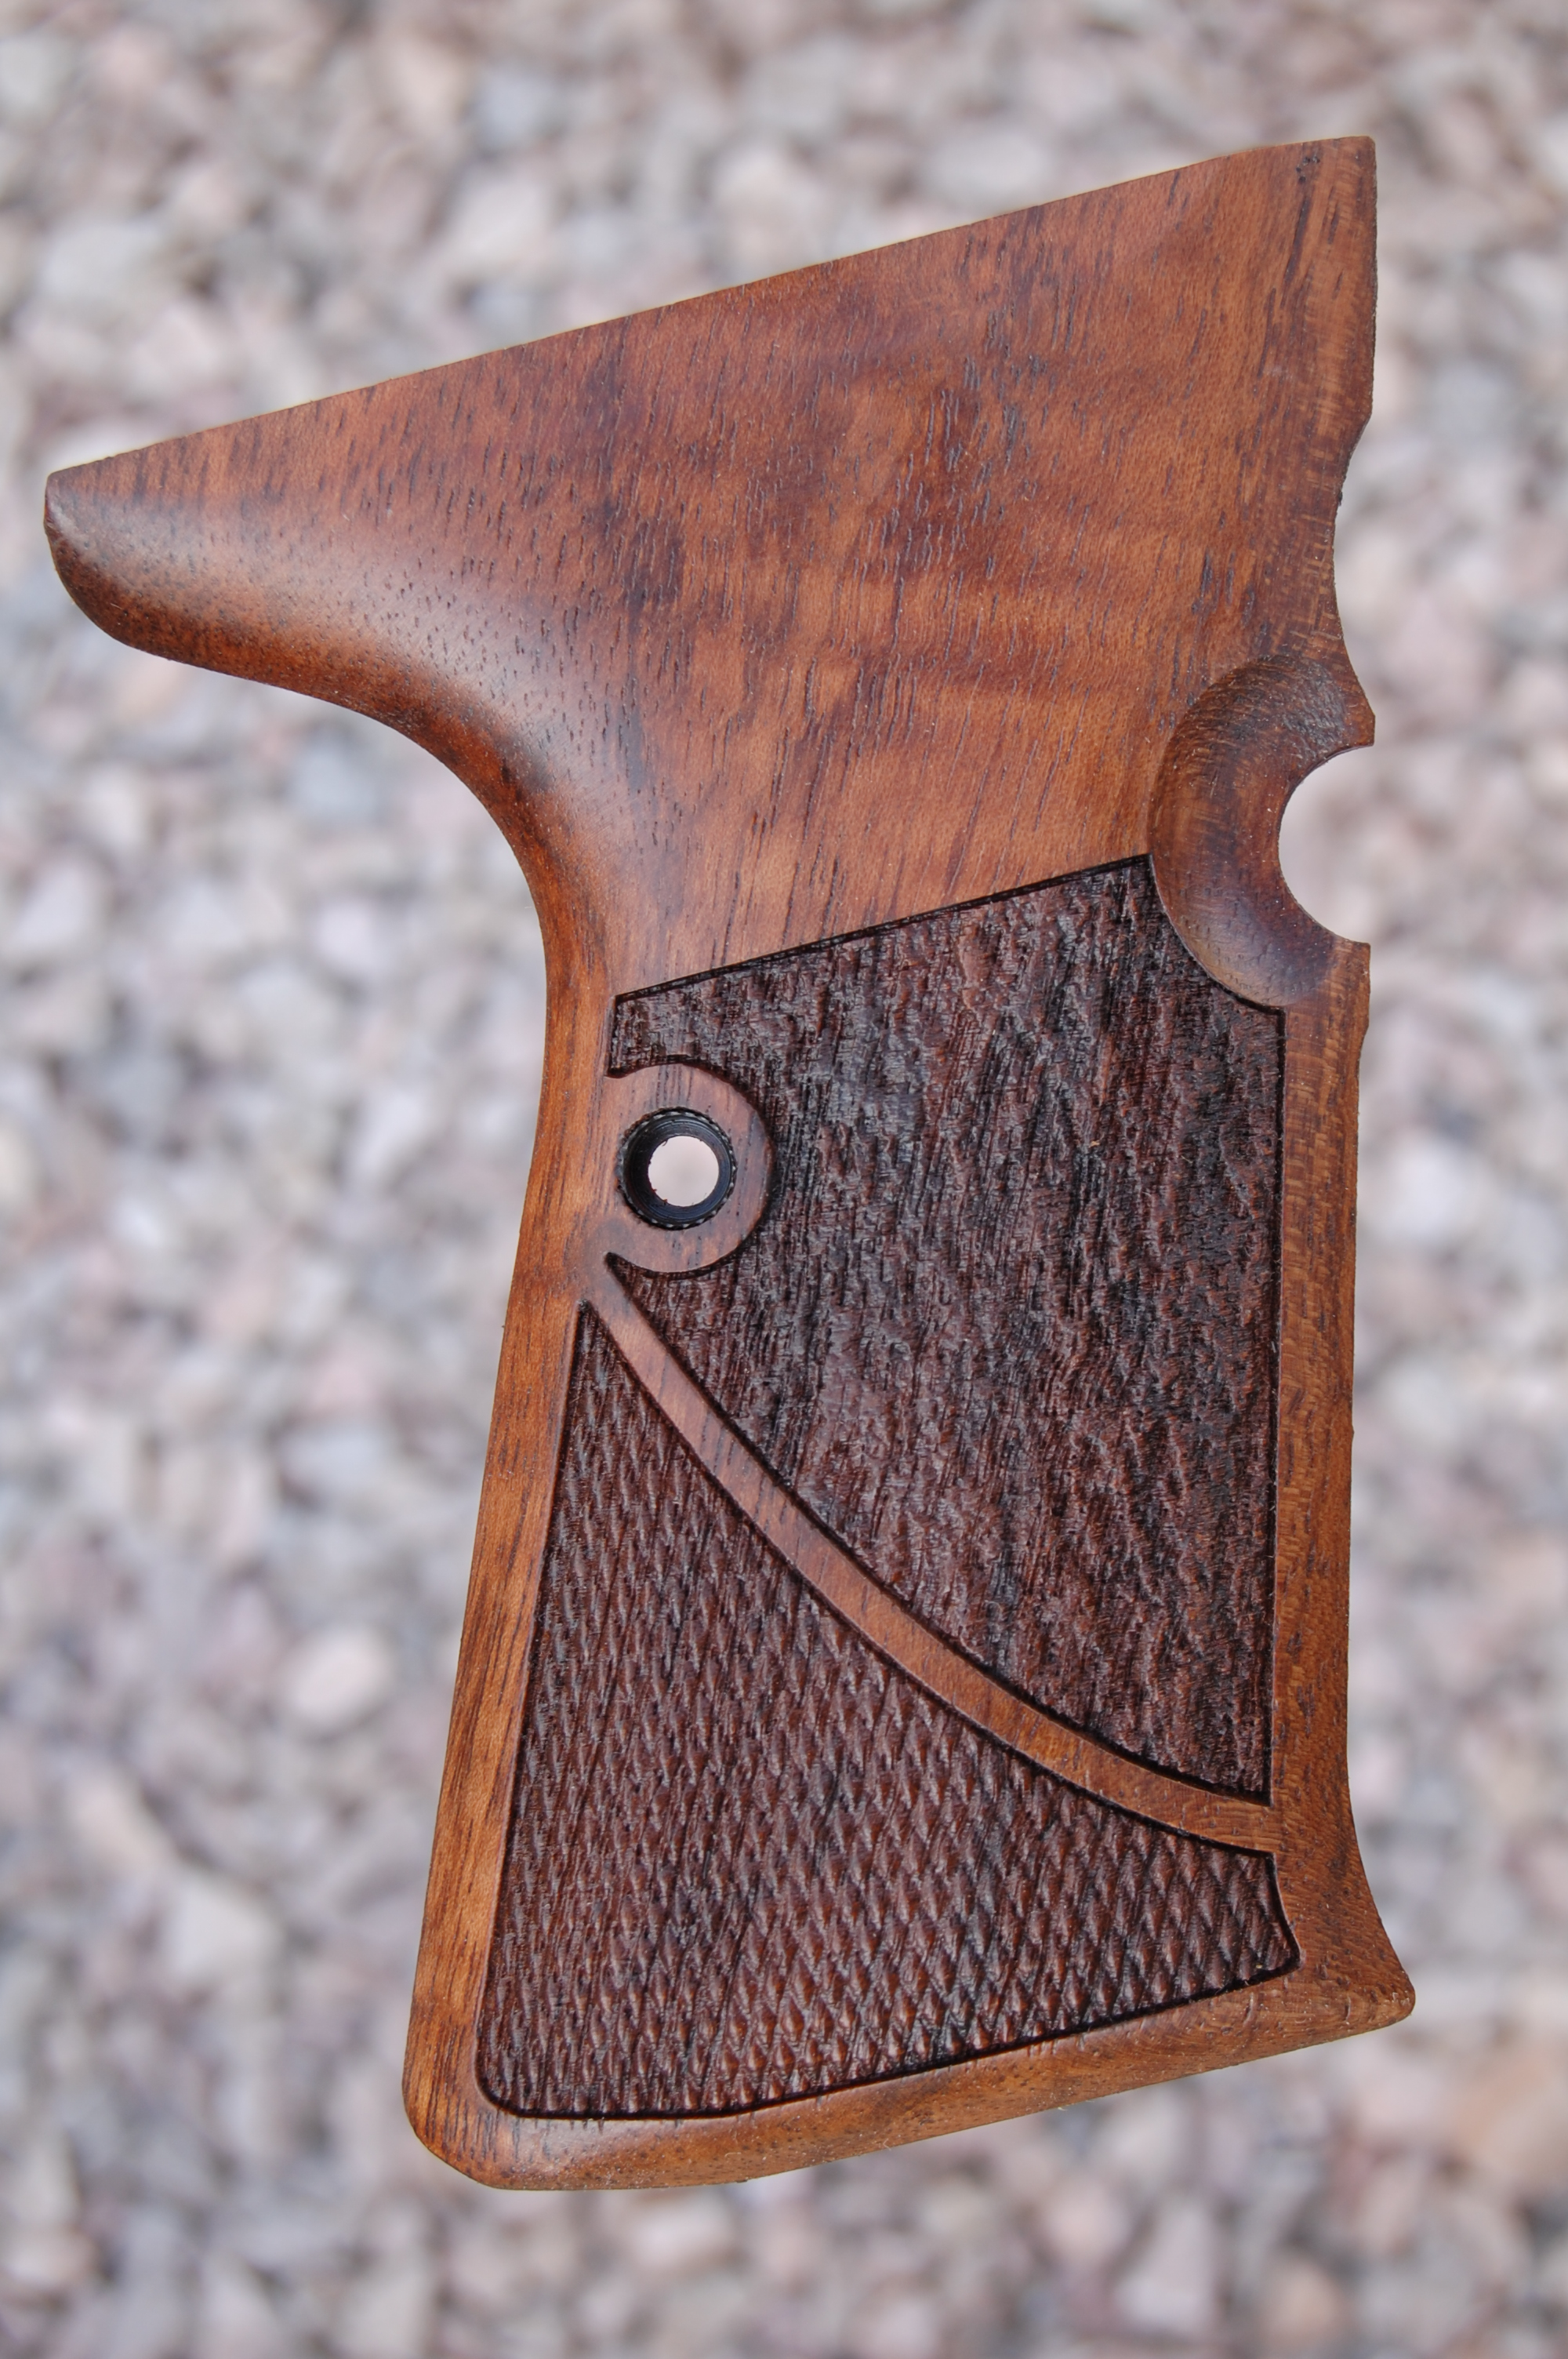 WALTHER P5 Compact side mag. release (checkered+textured) - full size